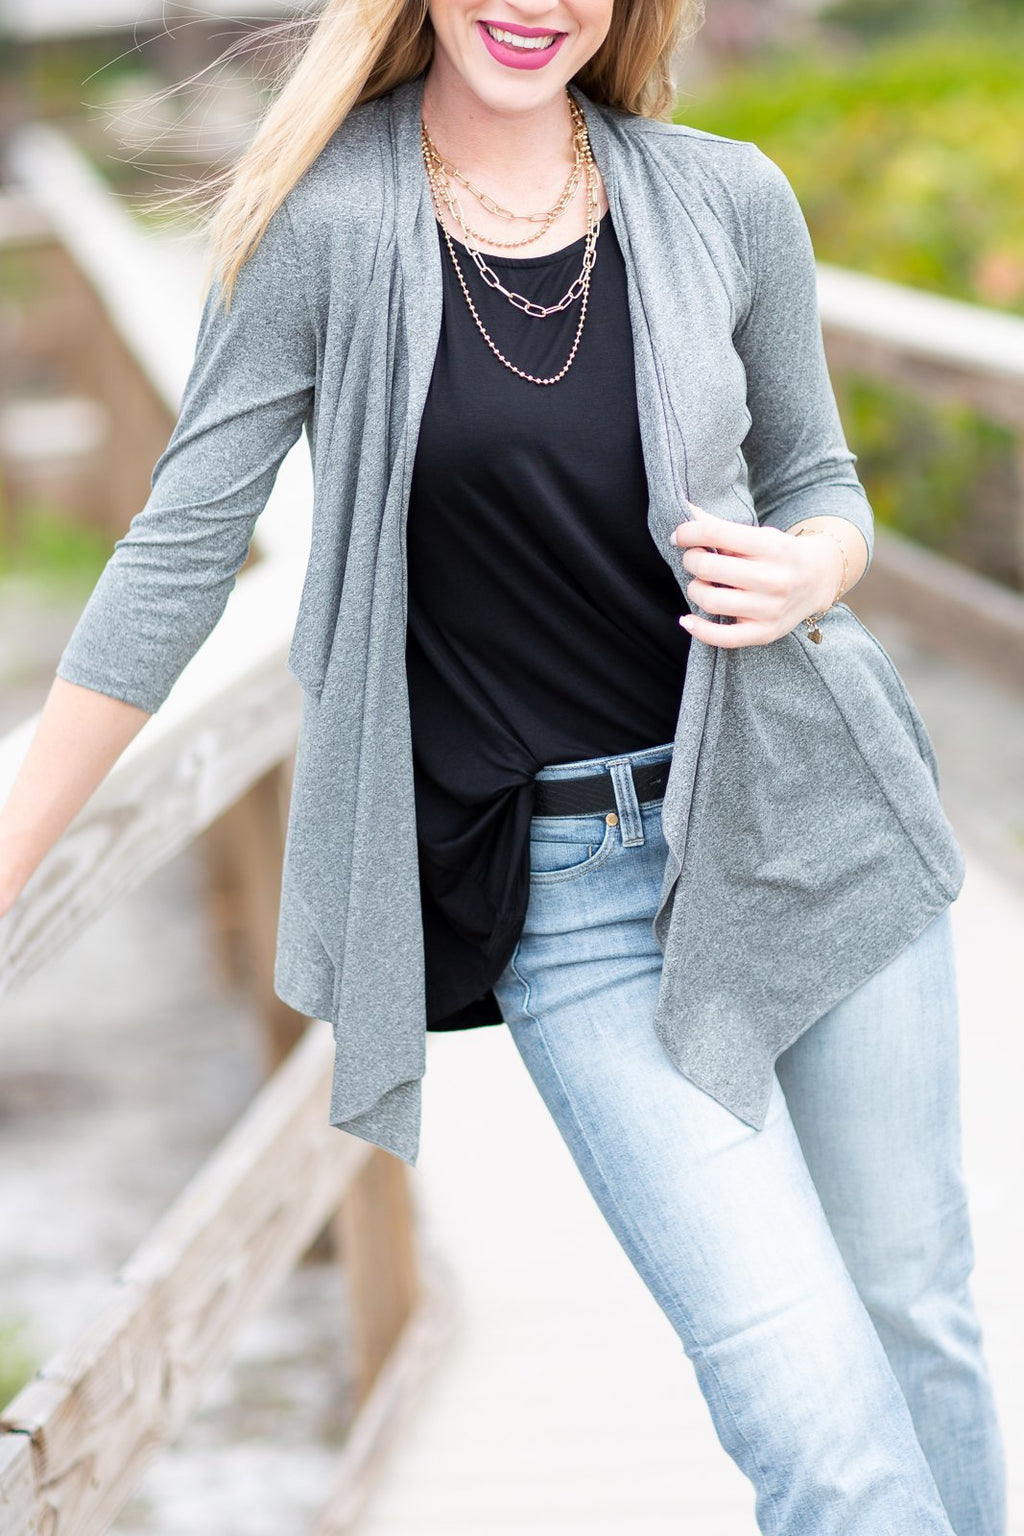 Must Be Love Draped Cardigan Grey - Hollie's Boutique